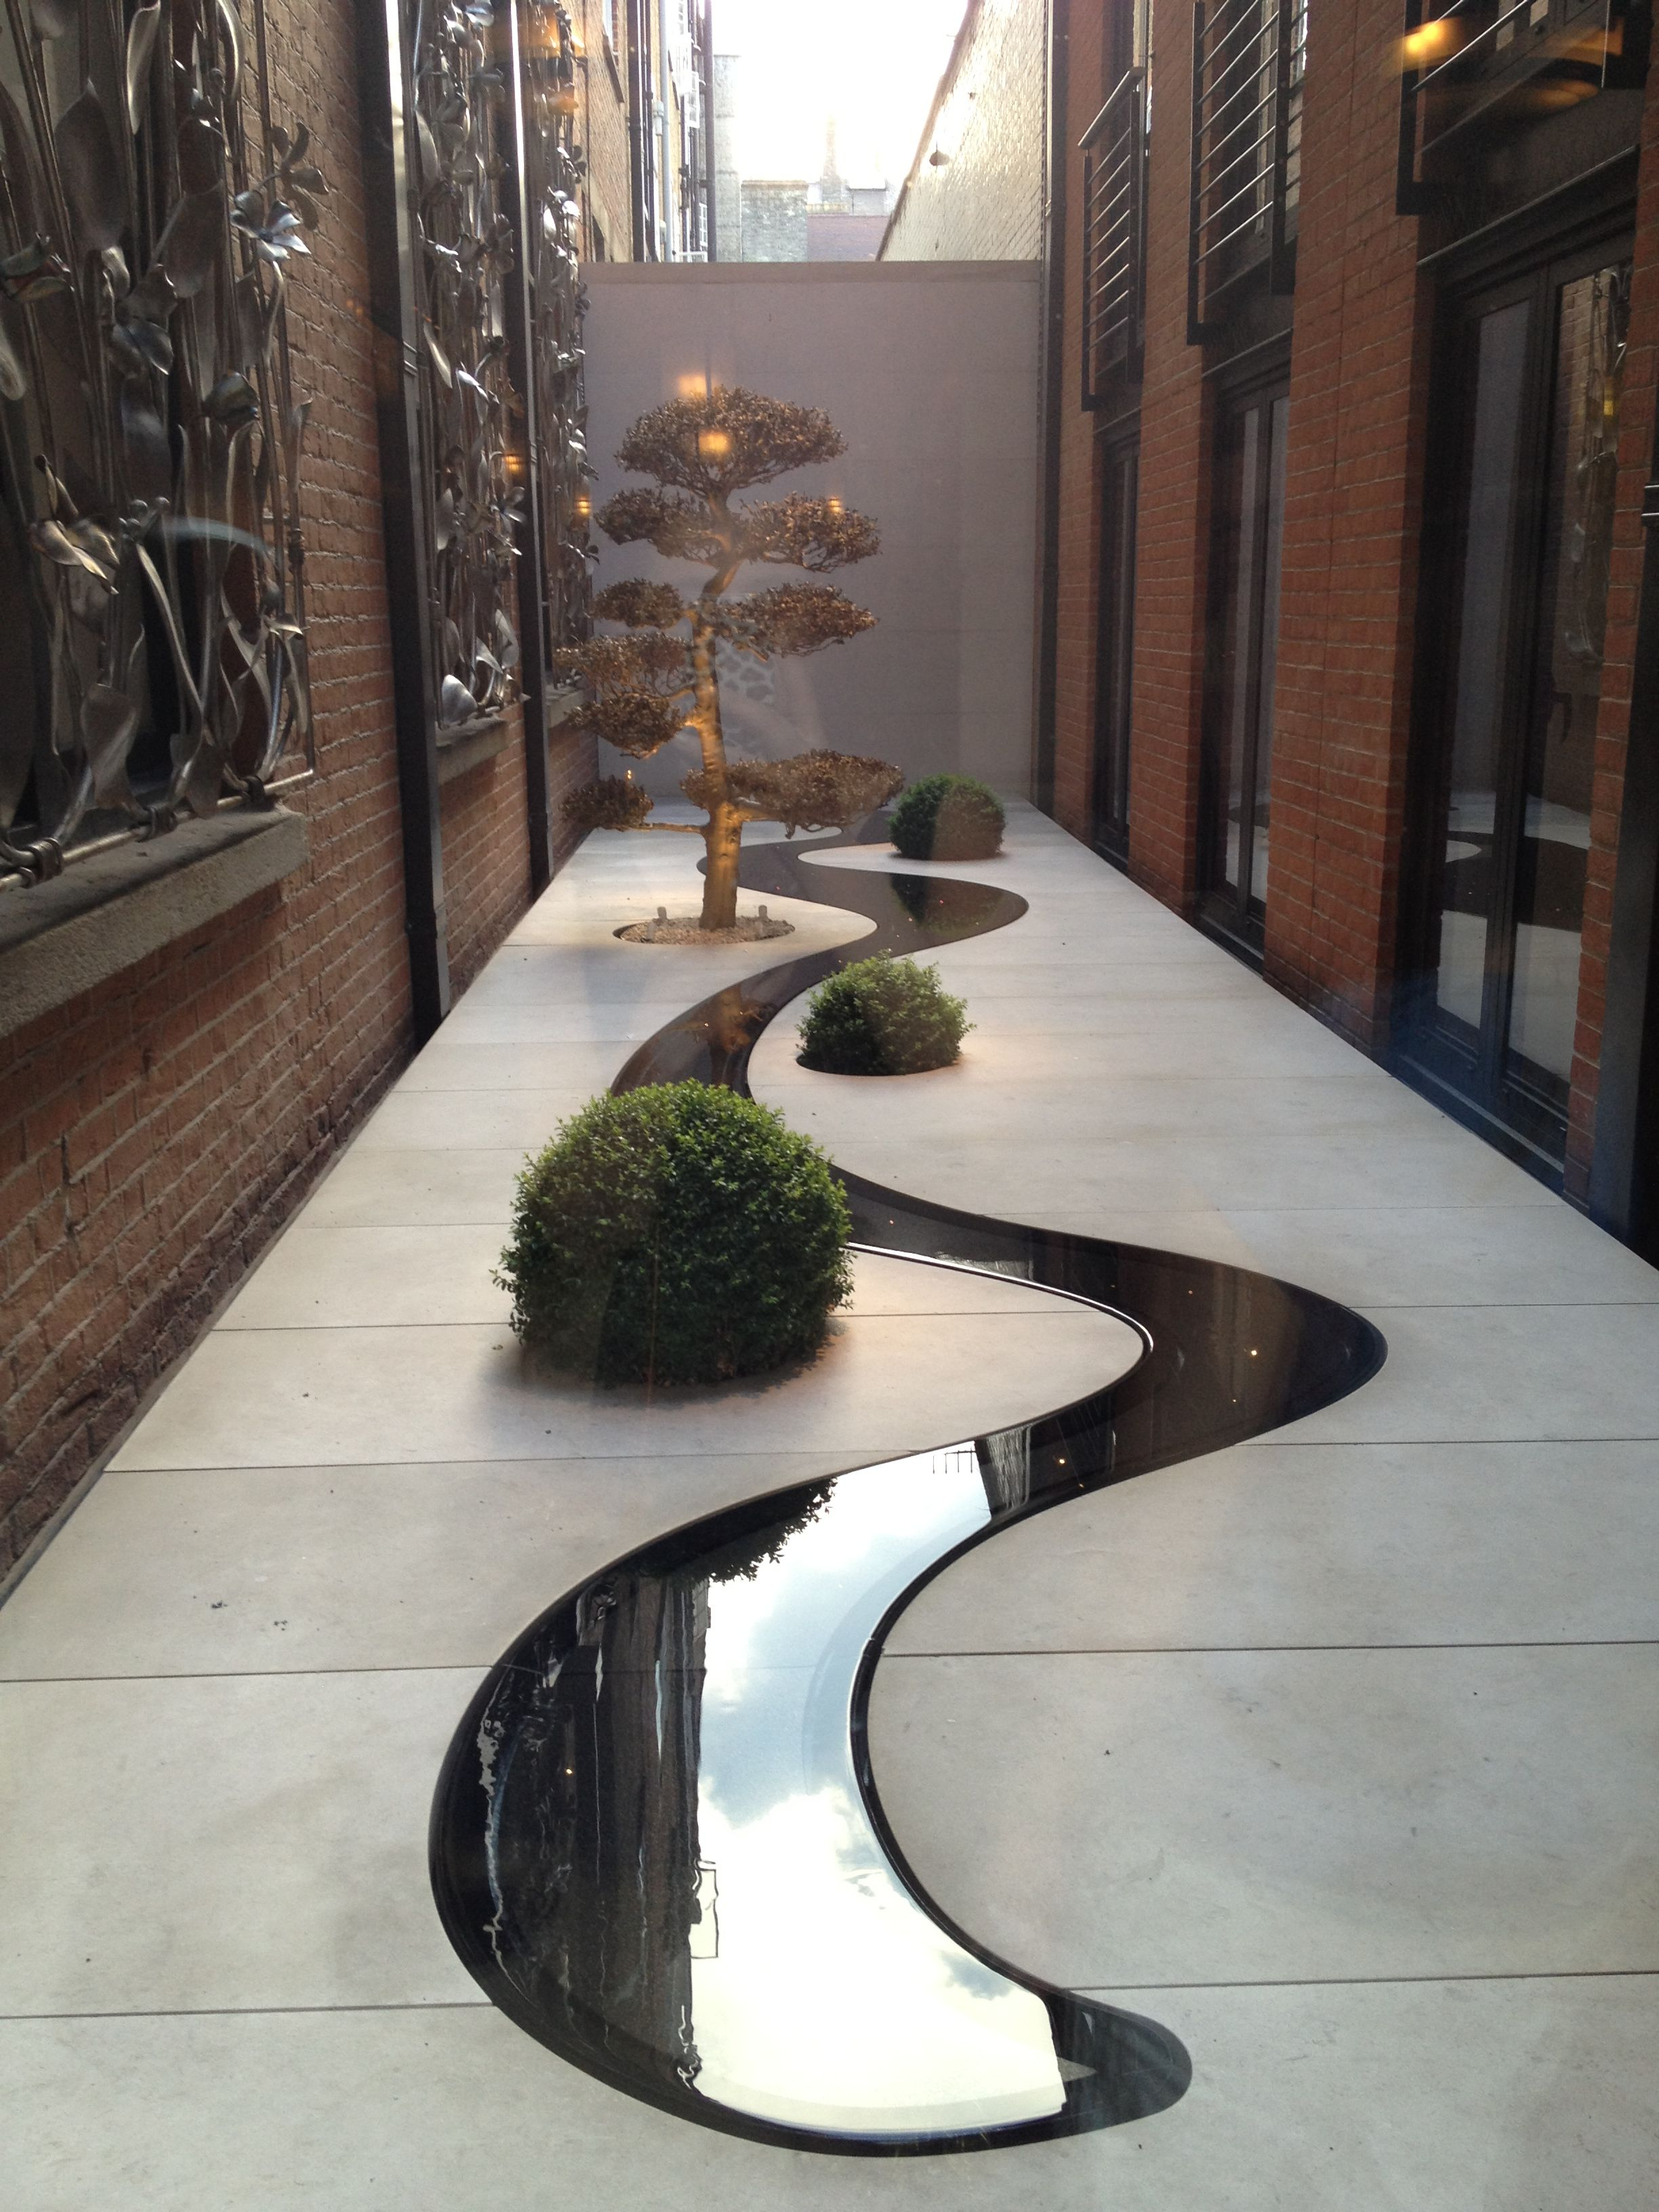 Zen Garden.in the middle of Mayfair. Is this a new